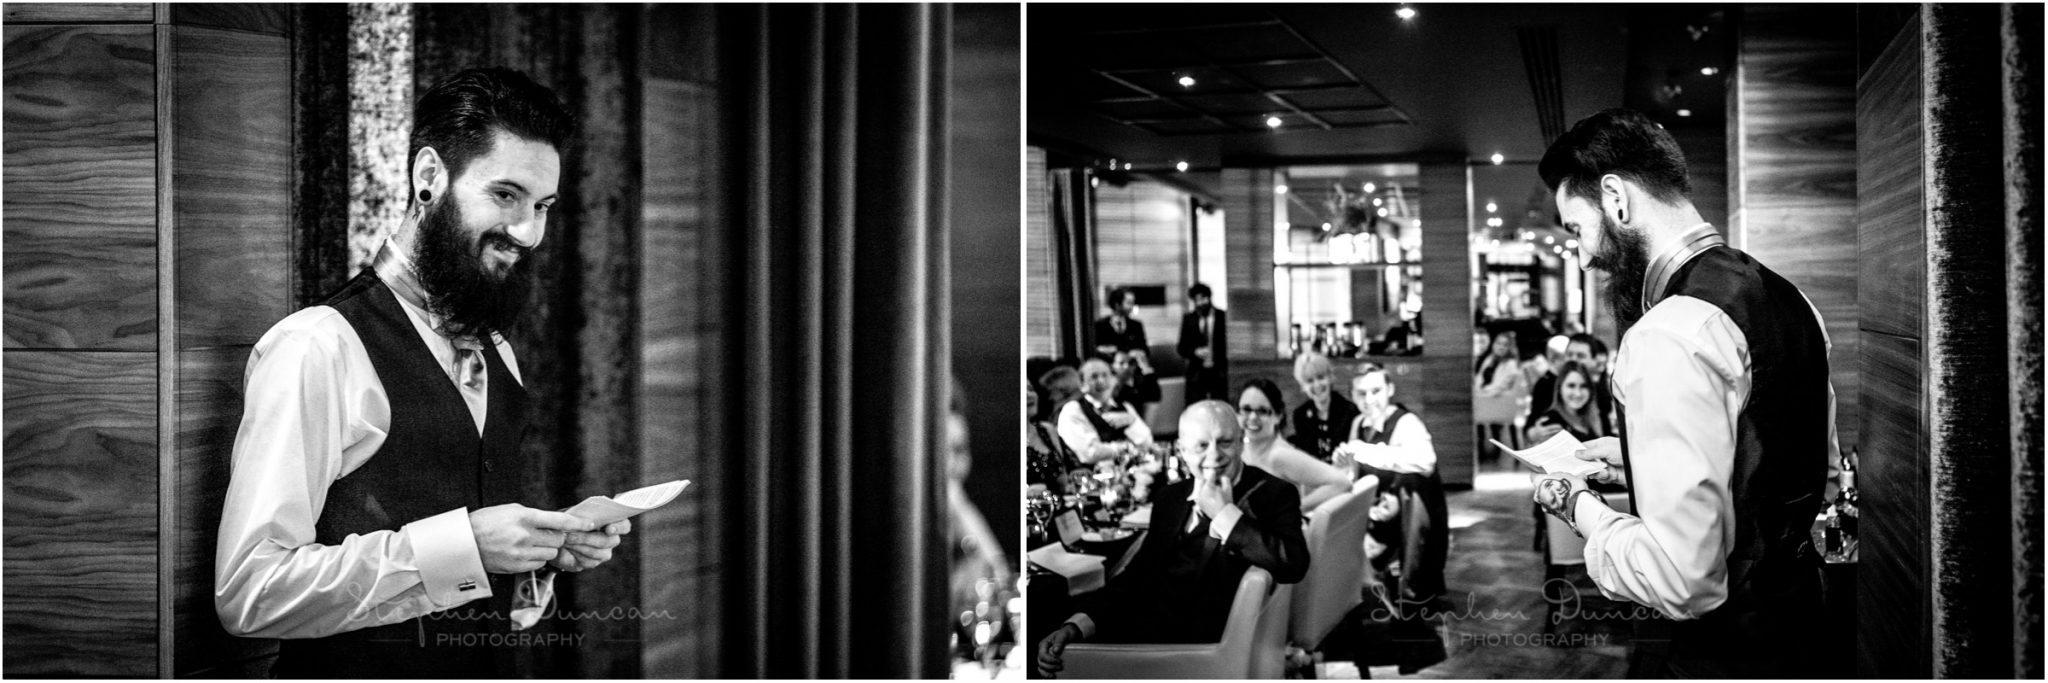 The Aviator wedding photography best man's speech